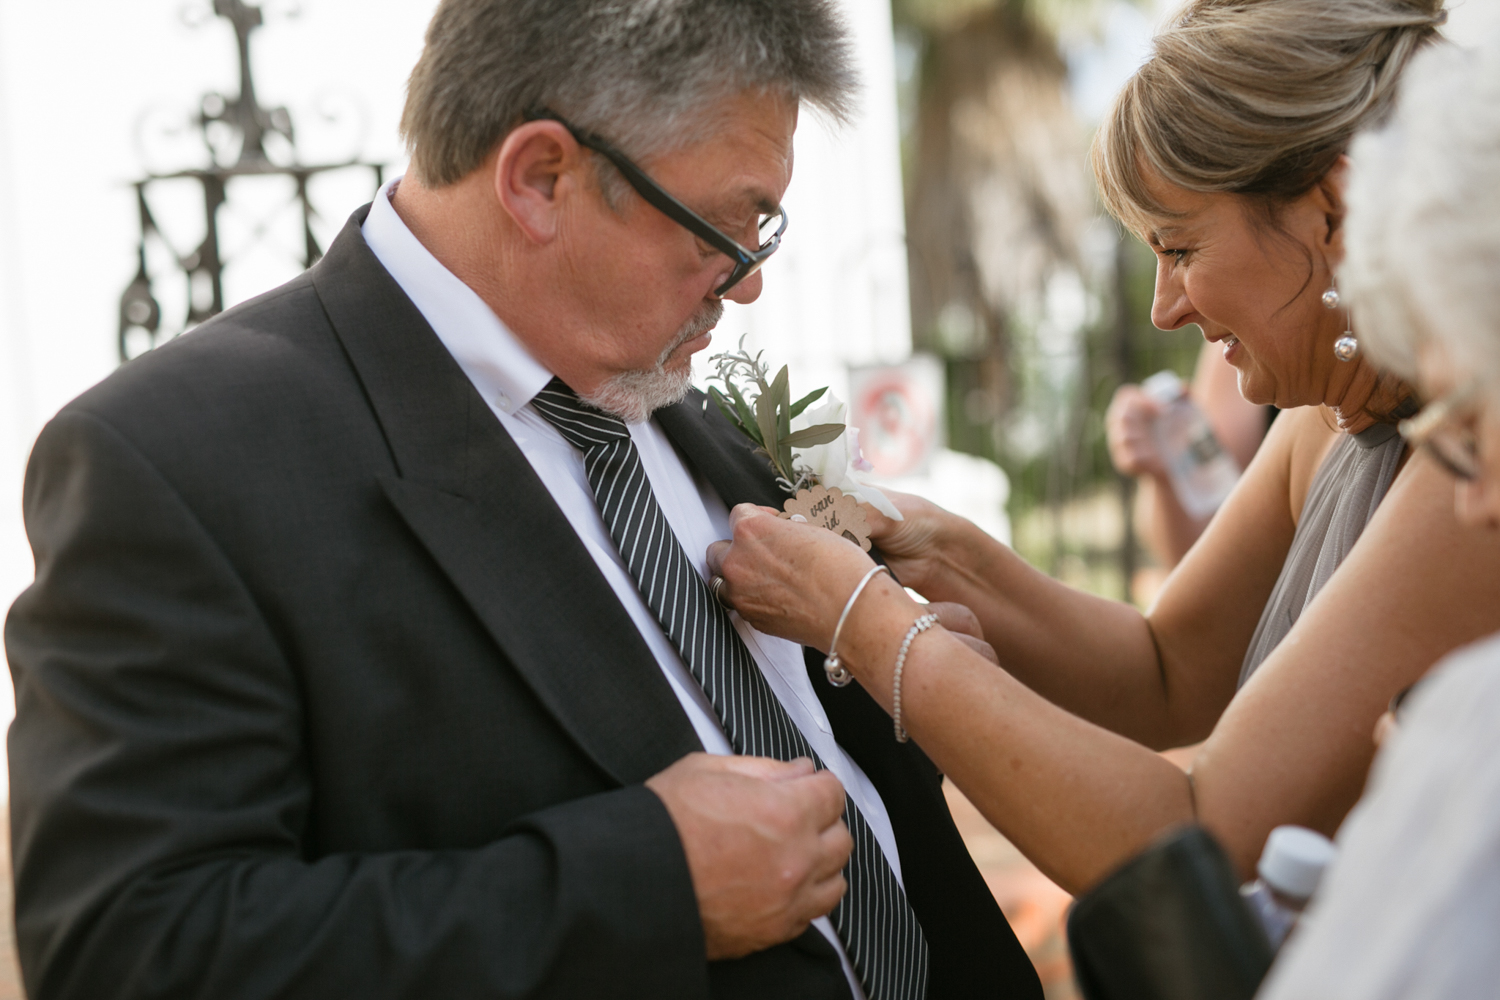 heisvisual-wedding-photographers-documentary-landtscap-south-africa003.jpg